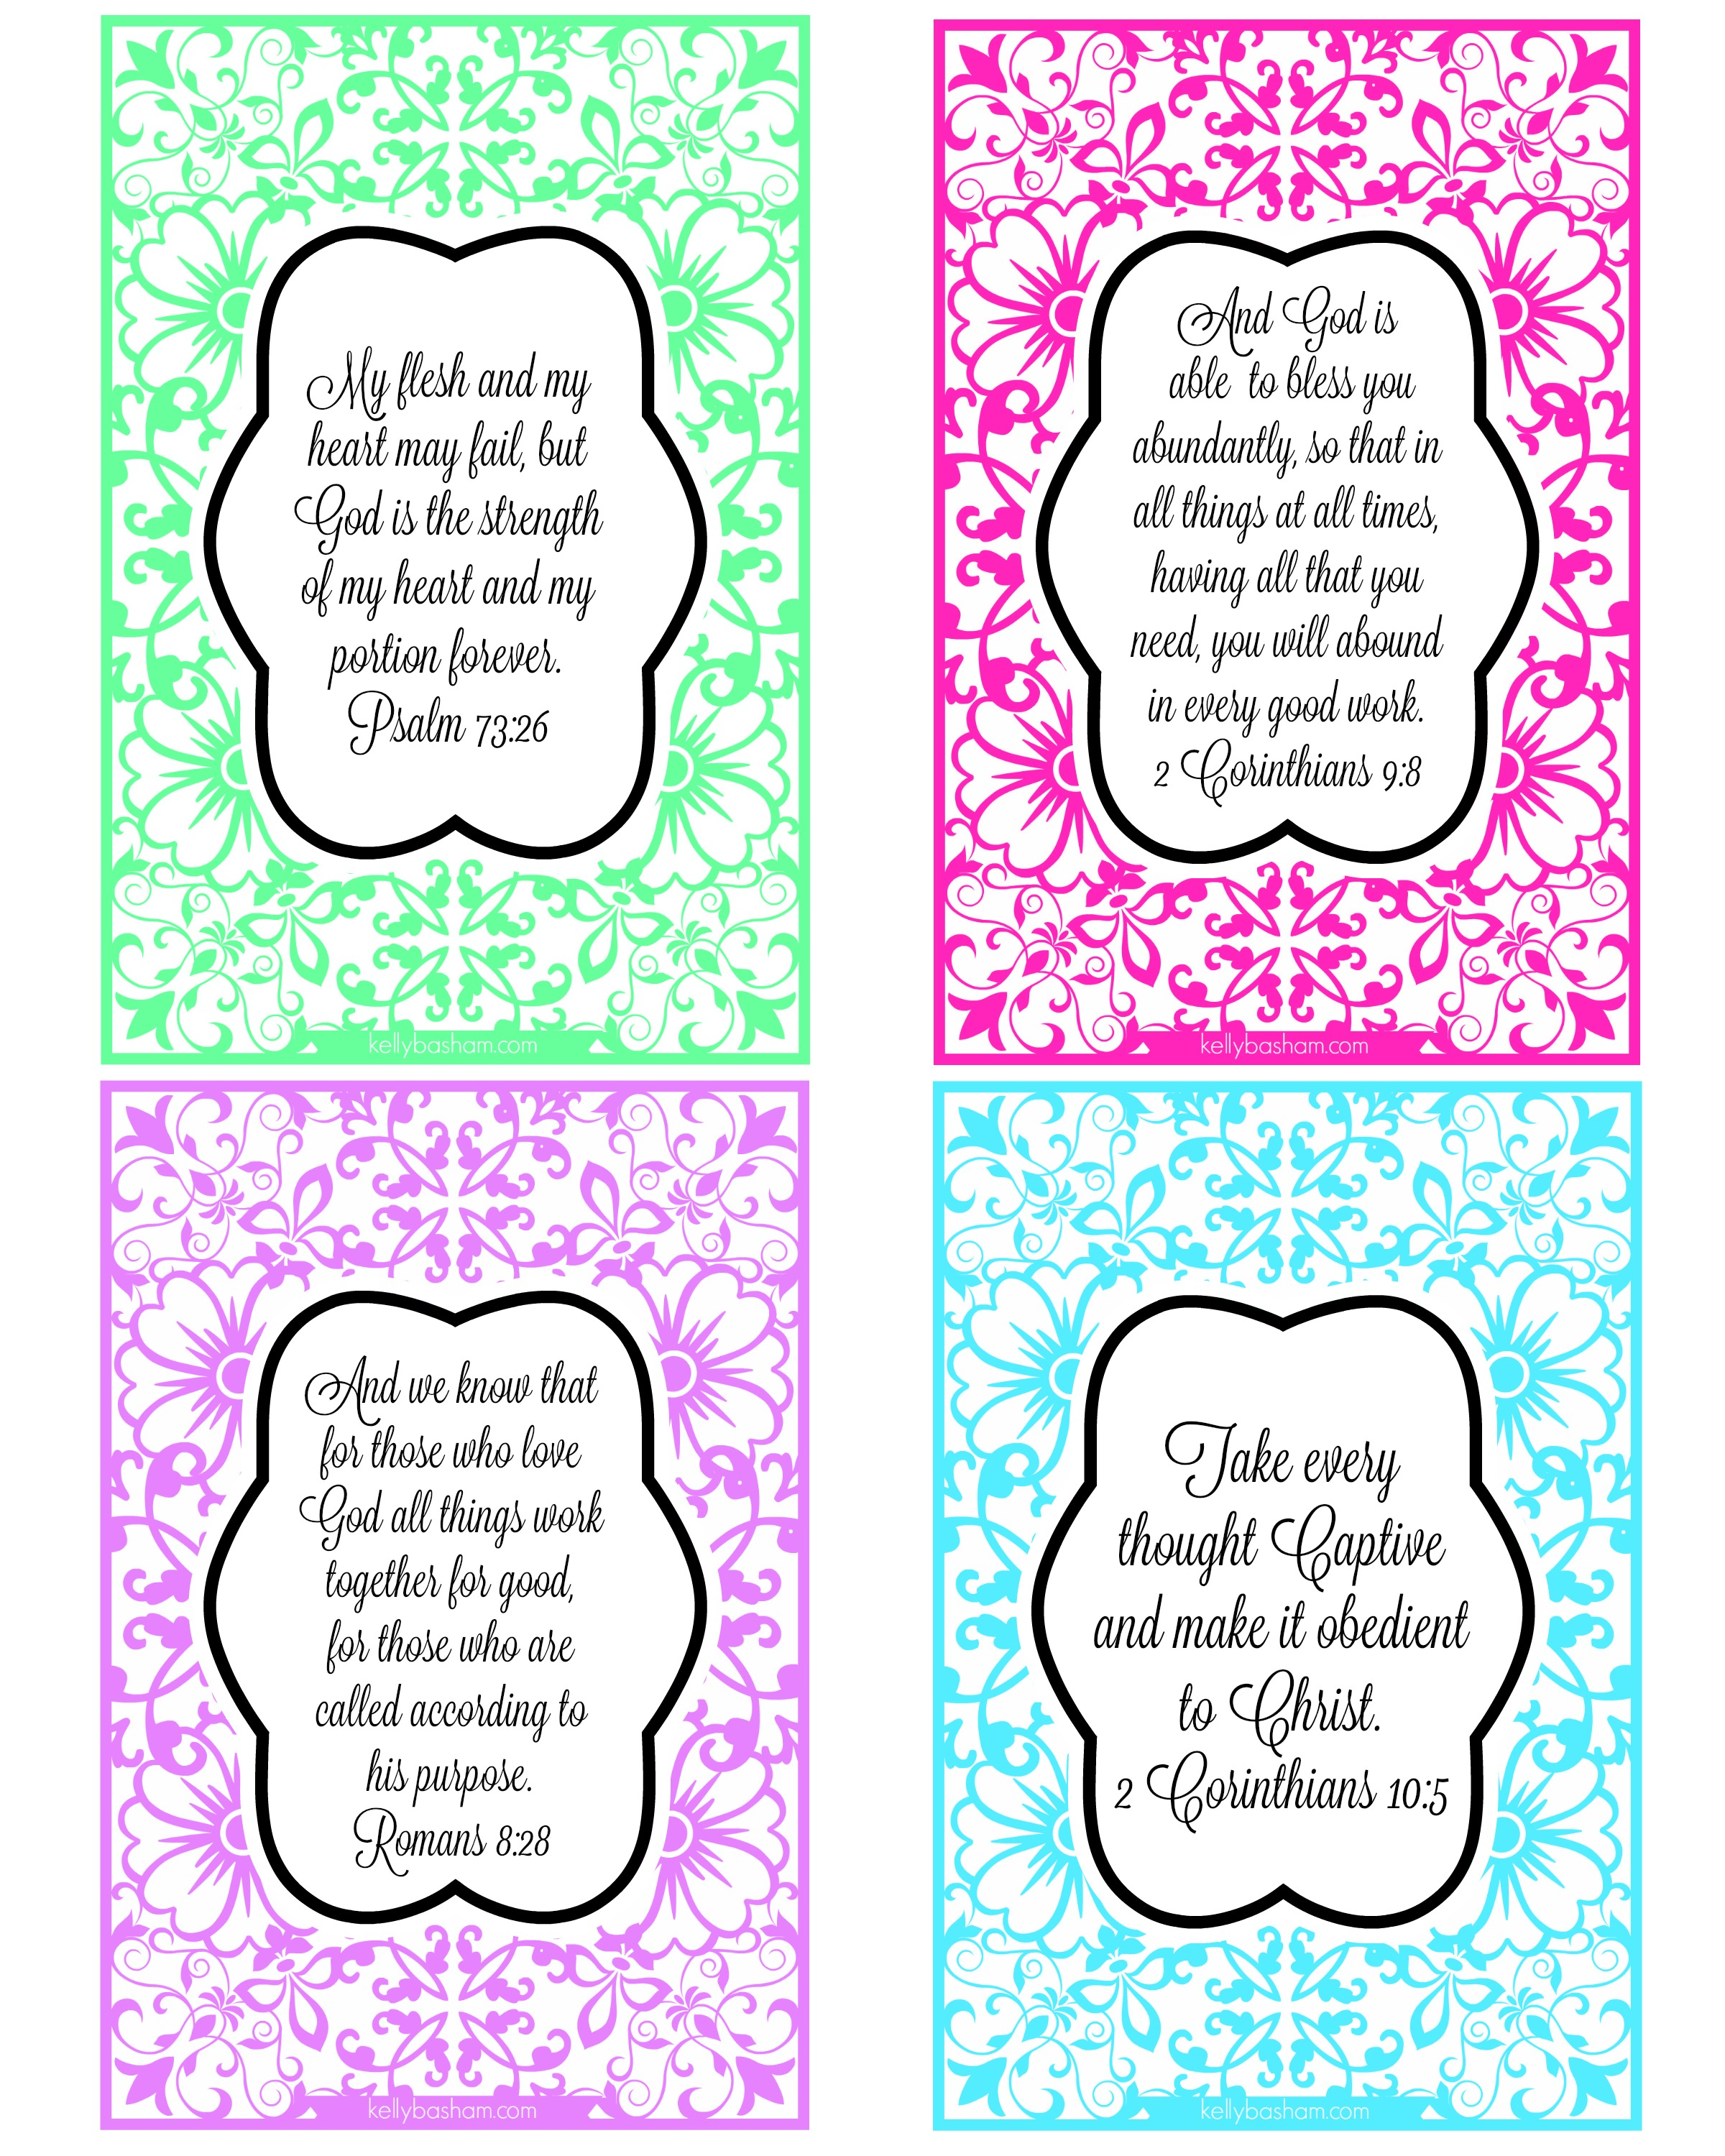 photograph regarding Free Printable Scripture Cards referred to as Blossom Within Religion ~ Printable Scripture Playing cards